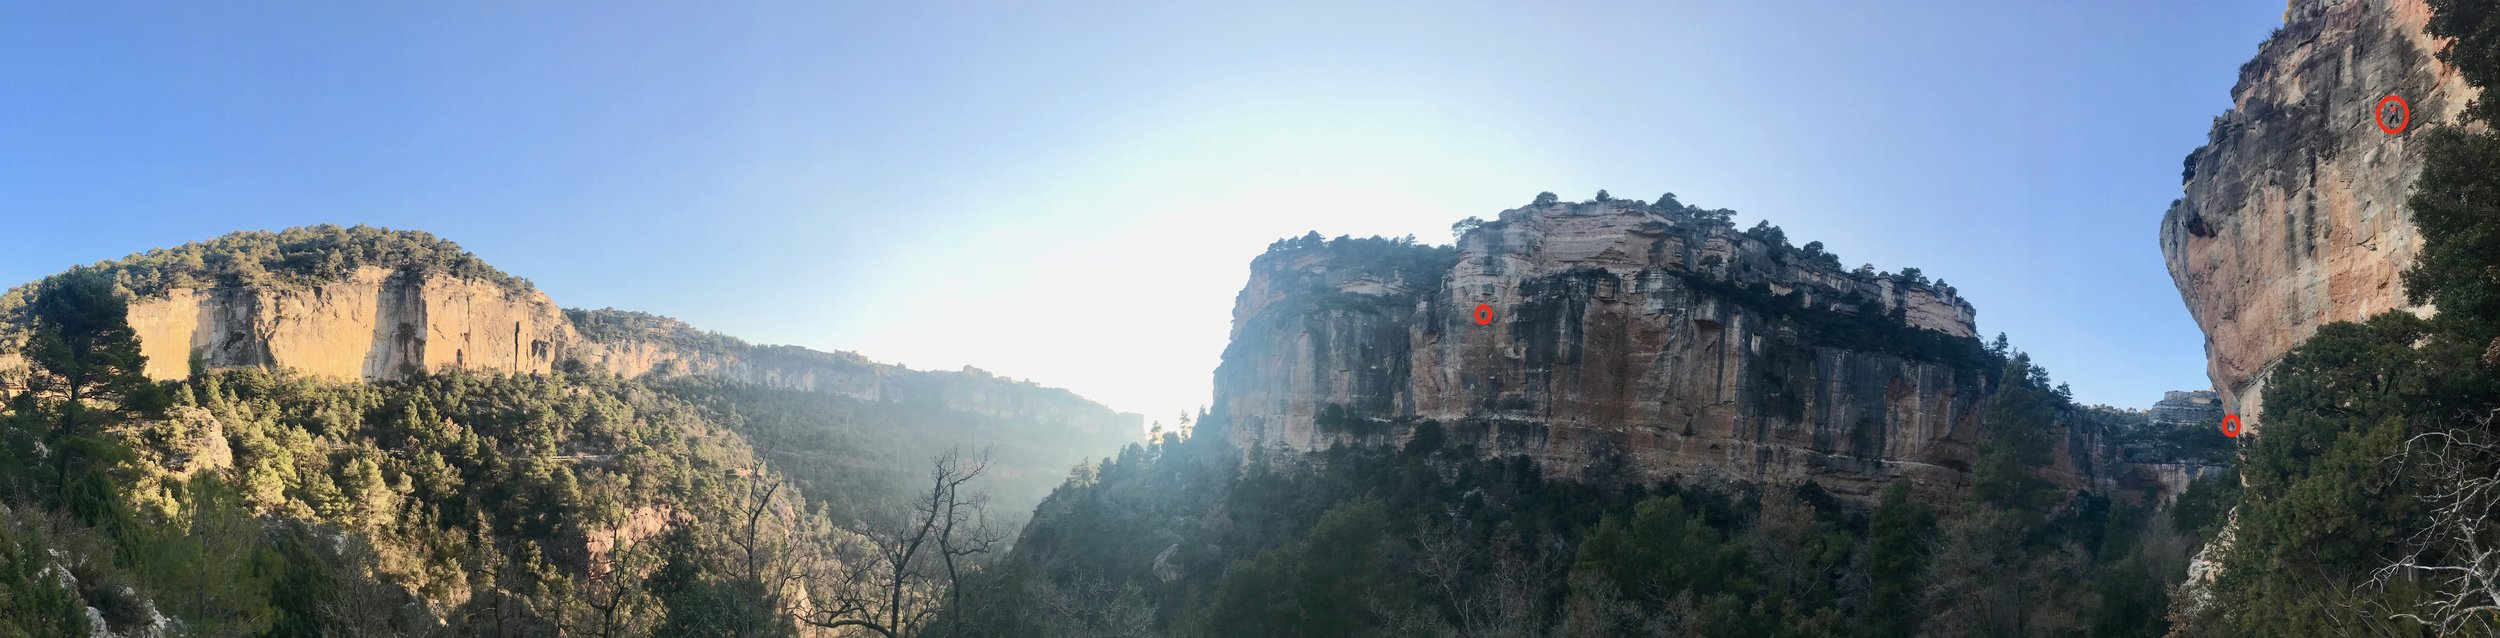 Siurana's incredible valley crags. Again, circling the climbers to give sense of scale and perspective.